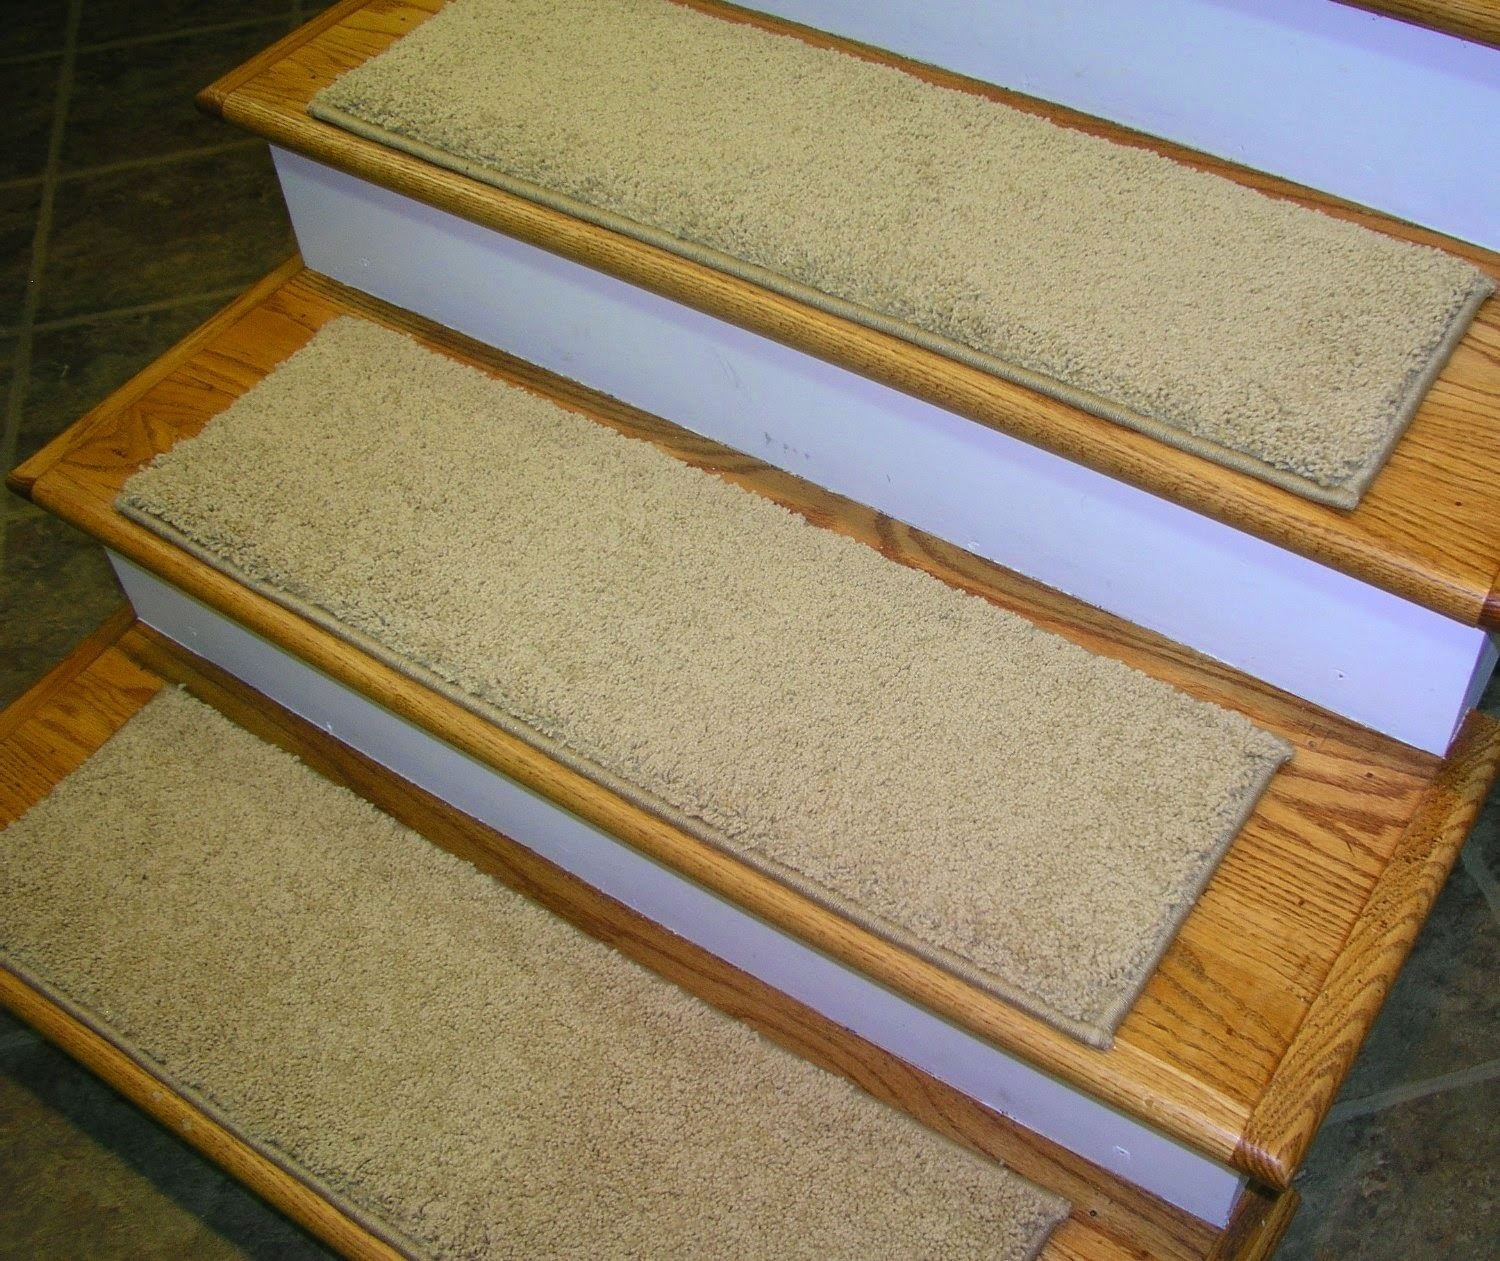 Carpet Stair Treads Intended For Premium Carpet Stair Treads (#7 of 20)